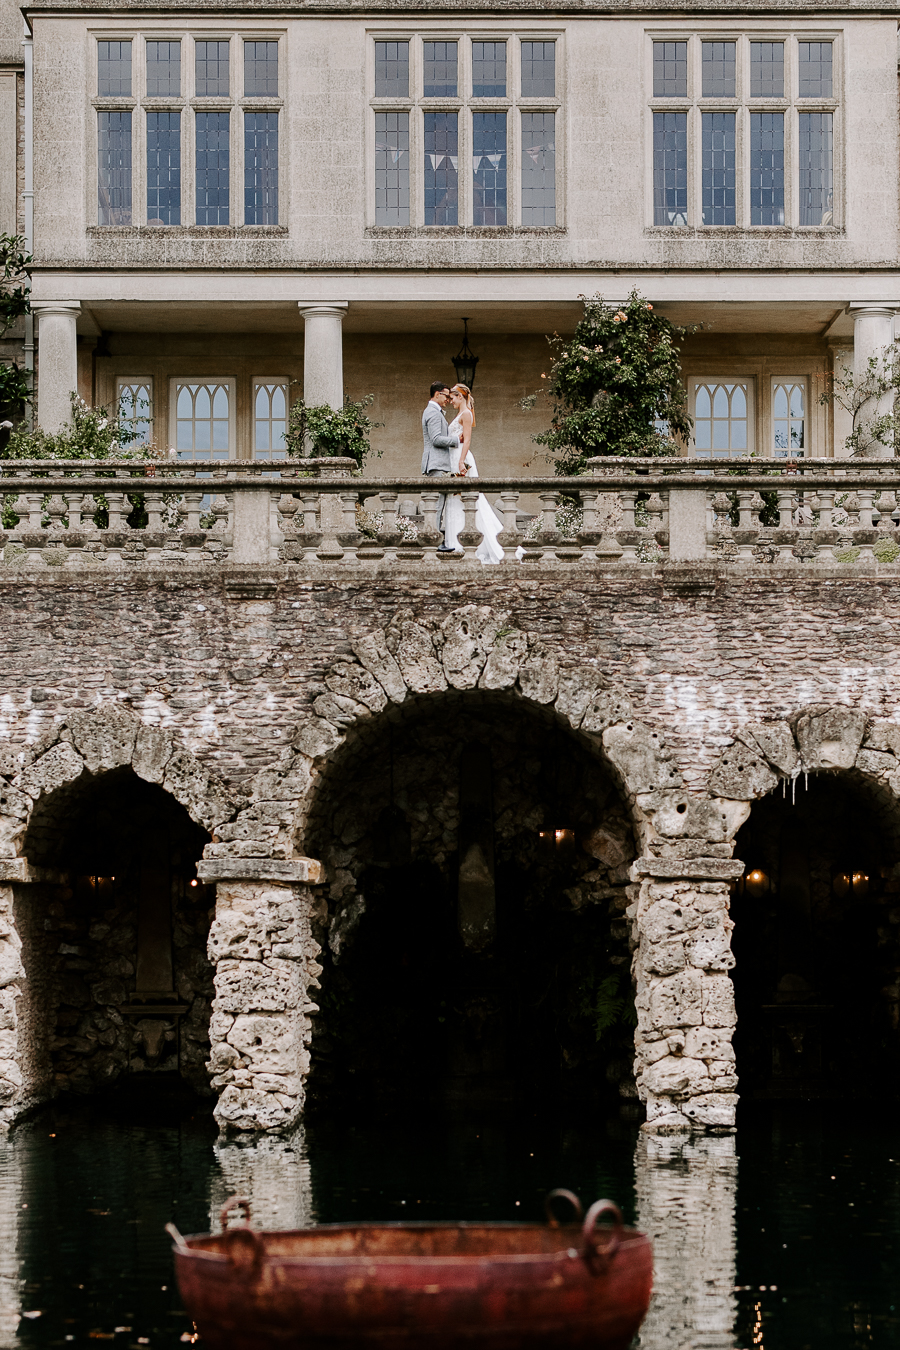 A magical wiltshire wedding venue - the Lost Orangery with Sam Cook Photography (14)